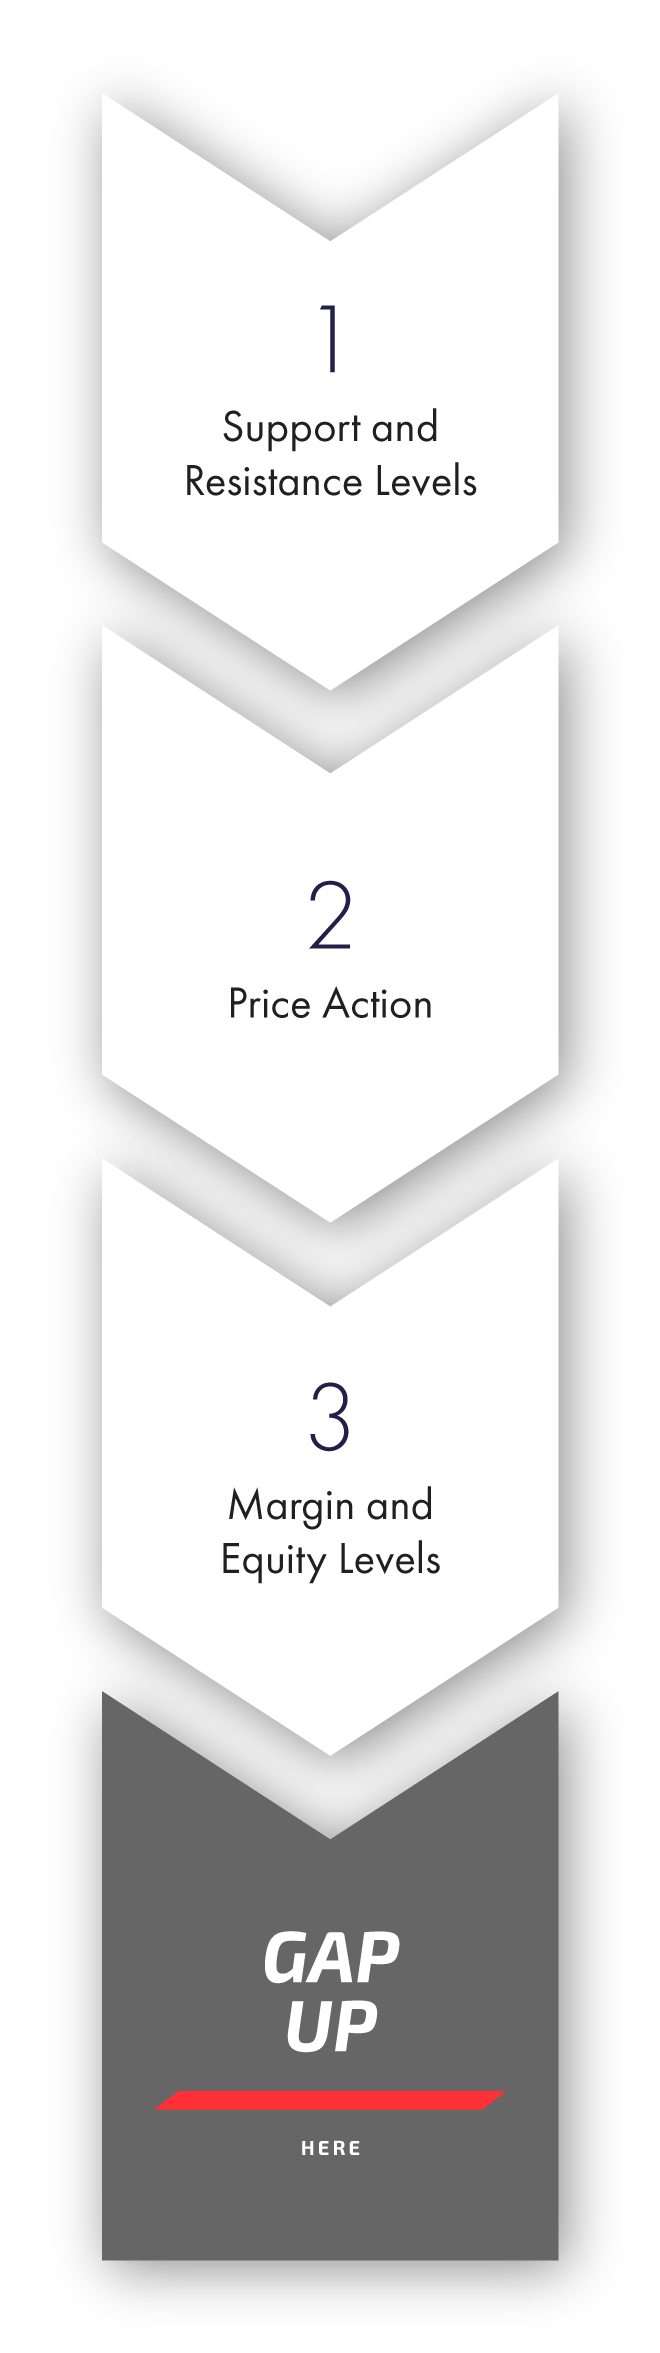 gap-up-strategy-samtrade-mobile